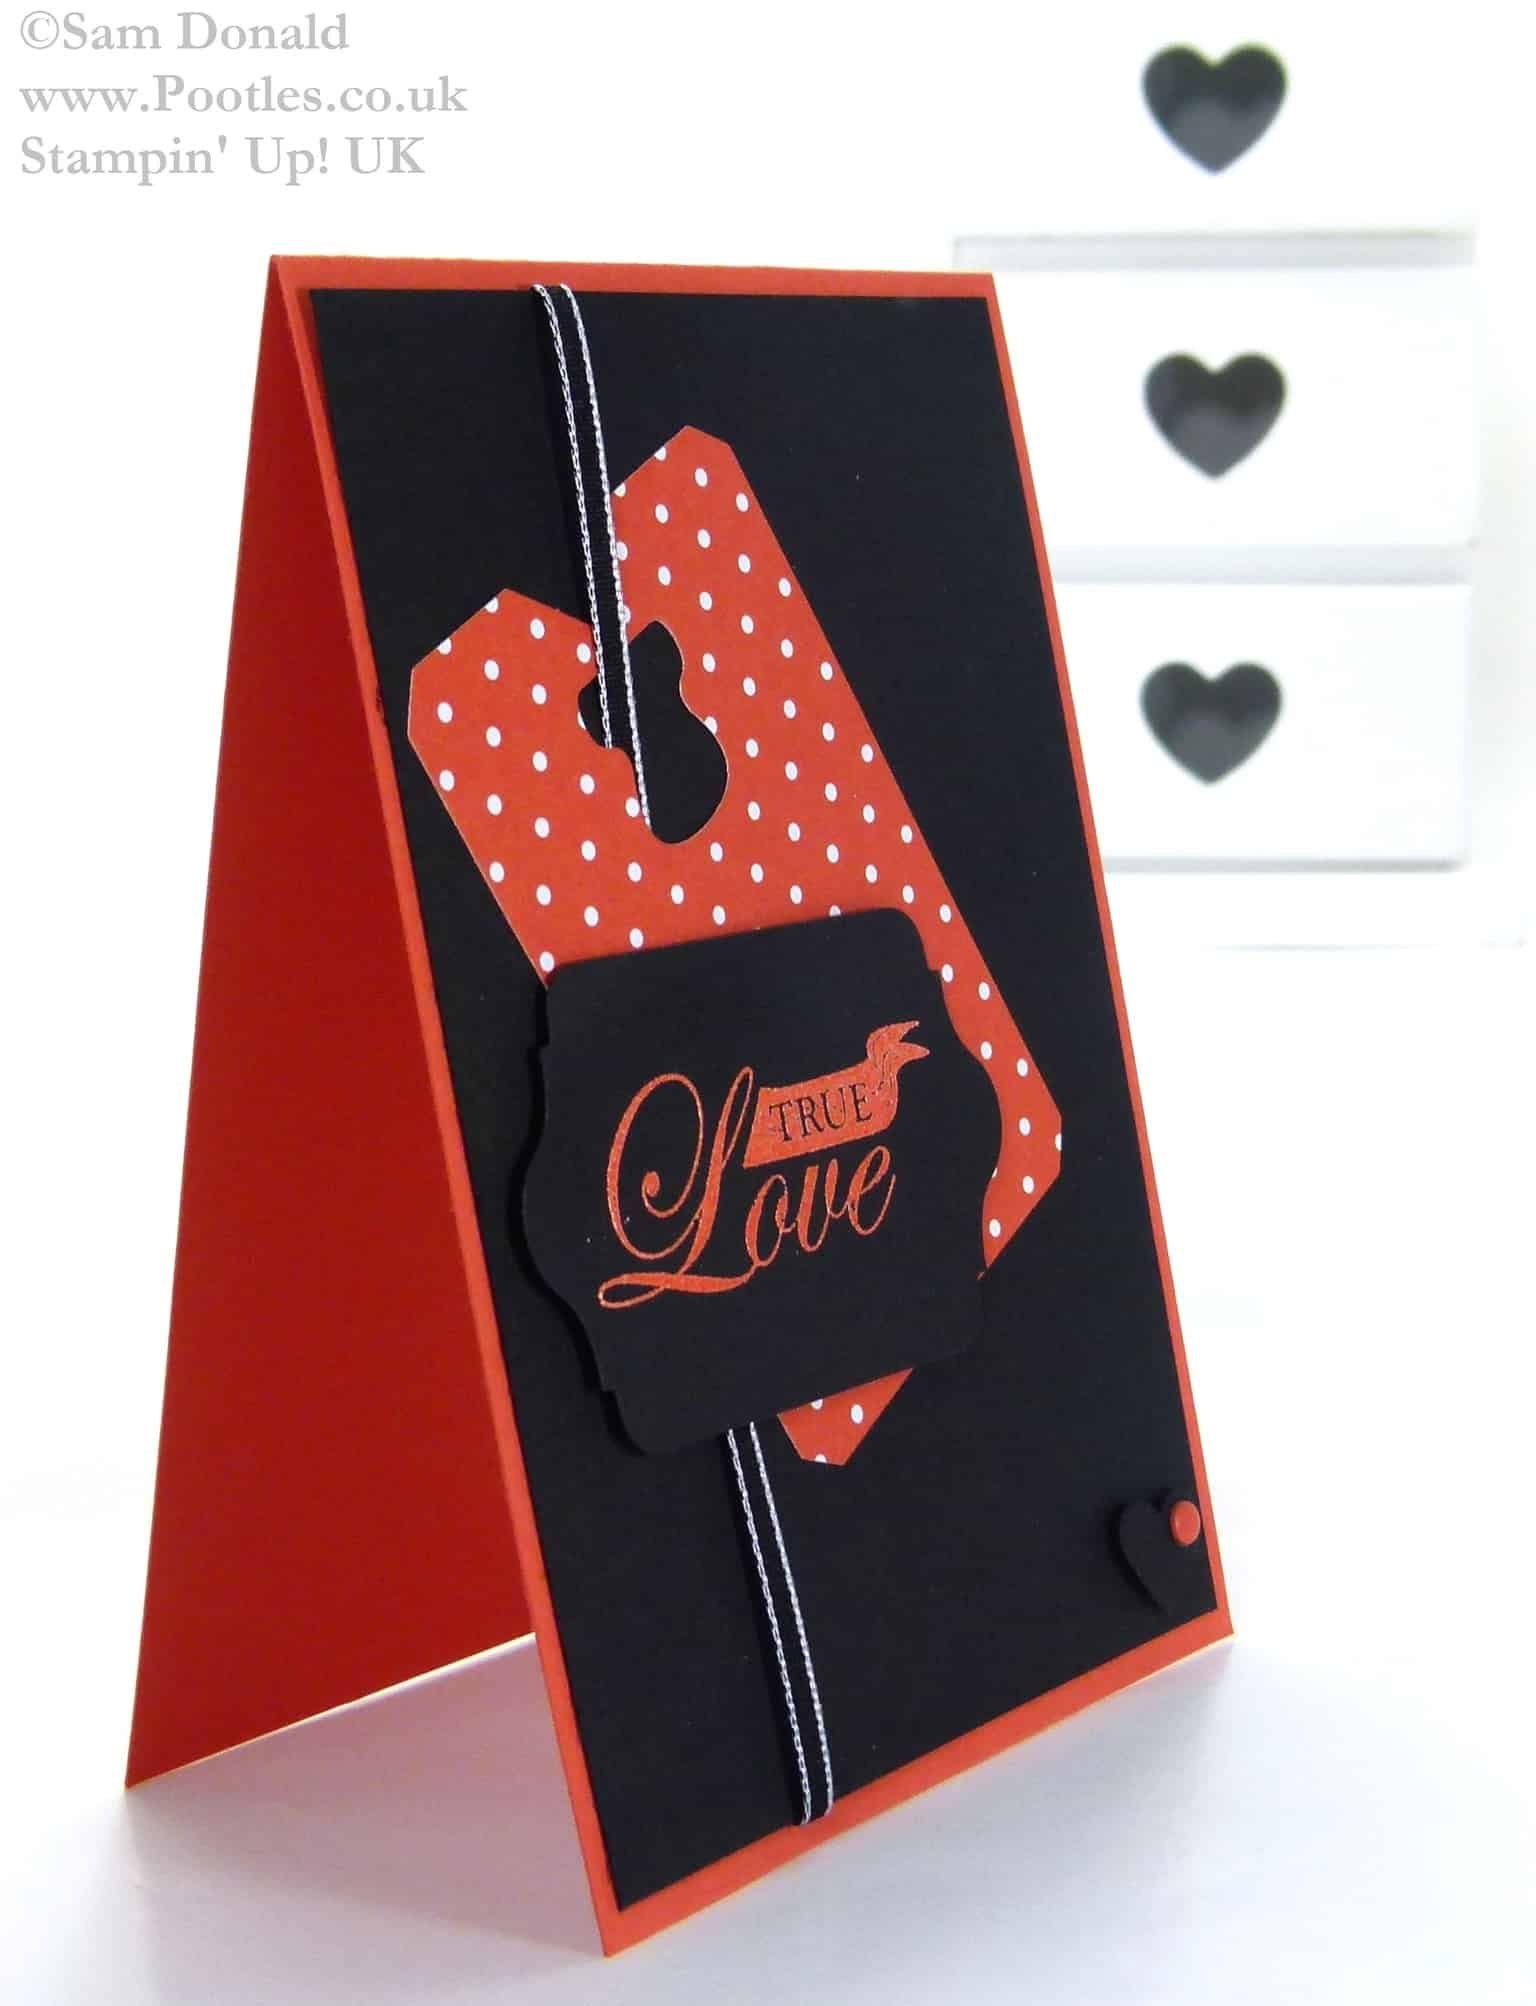 POOTLES Stampin Up UK Brights Week Manly Tangerine Tango Valentine Card 3